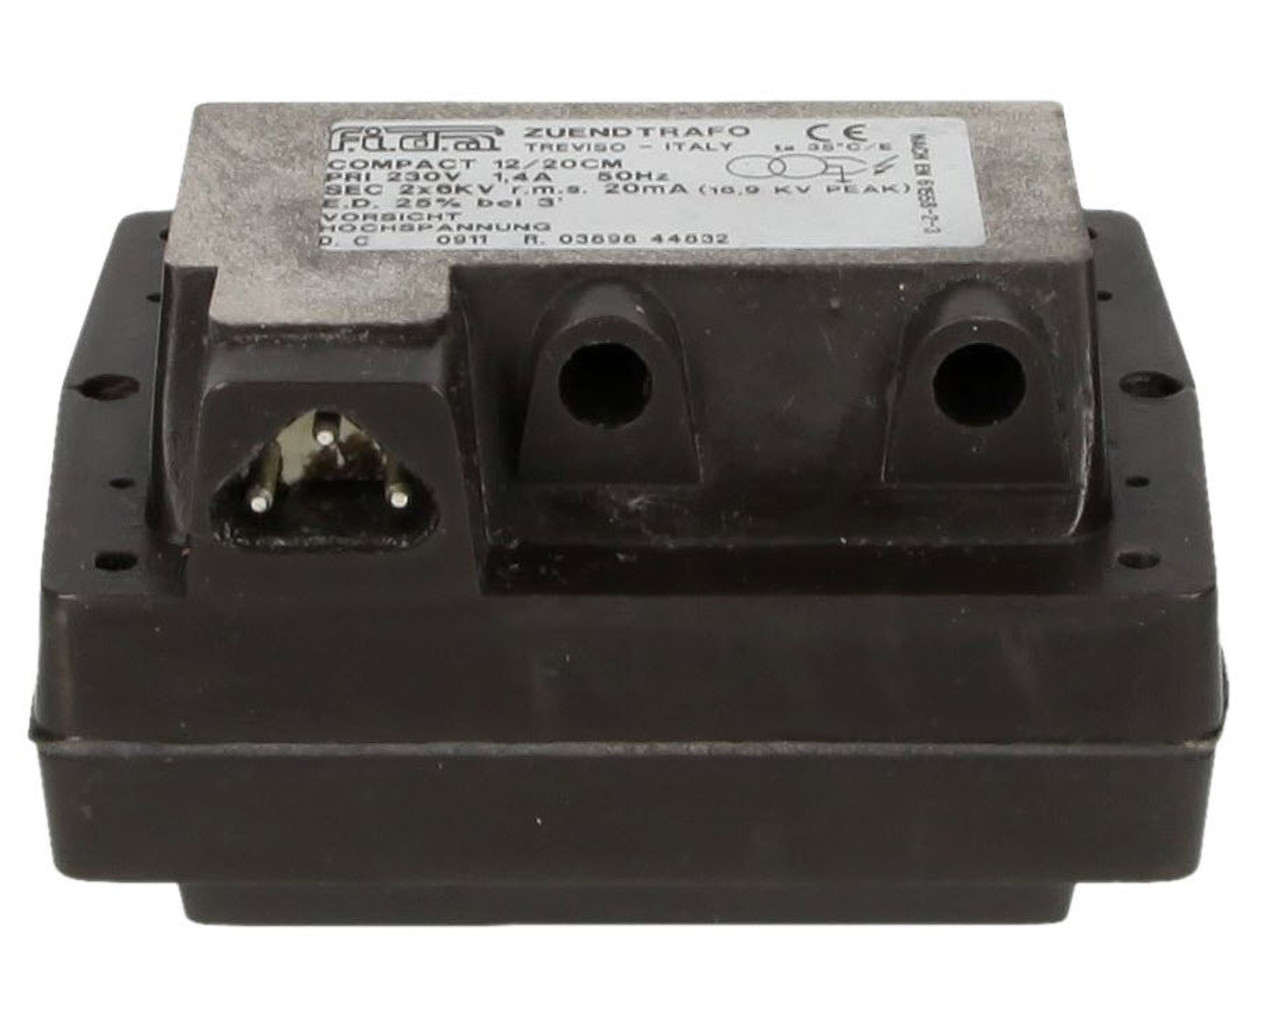 12/20 CM, FIDA ignition transformer